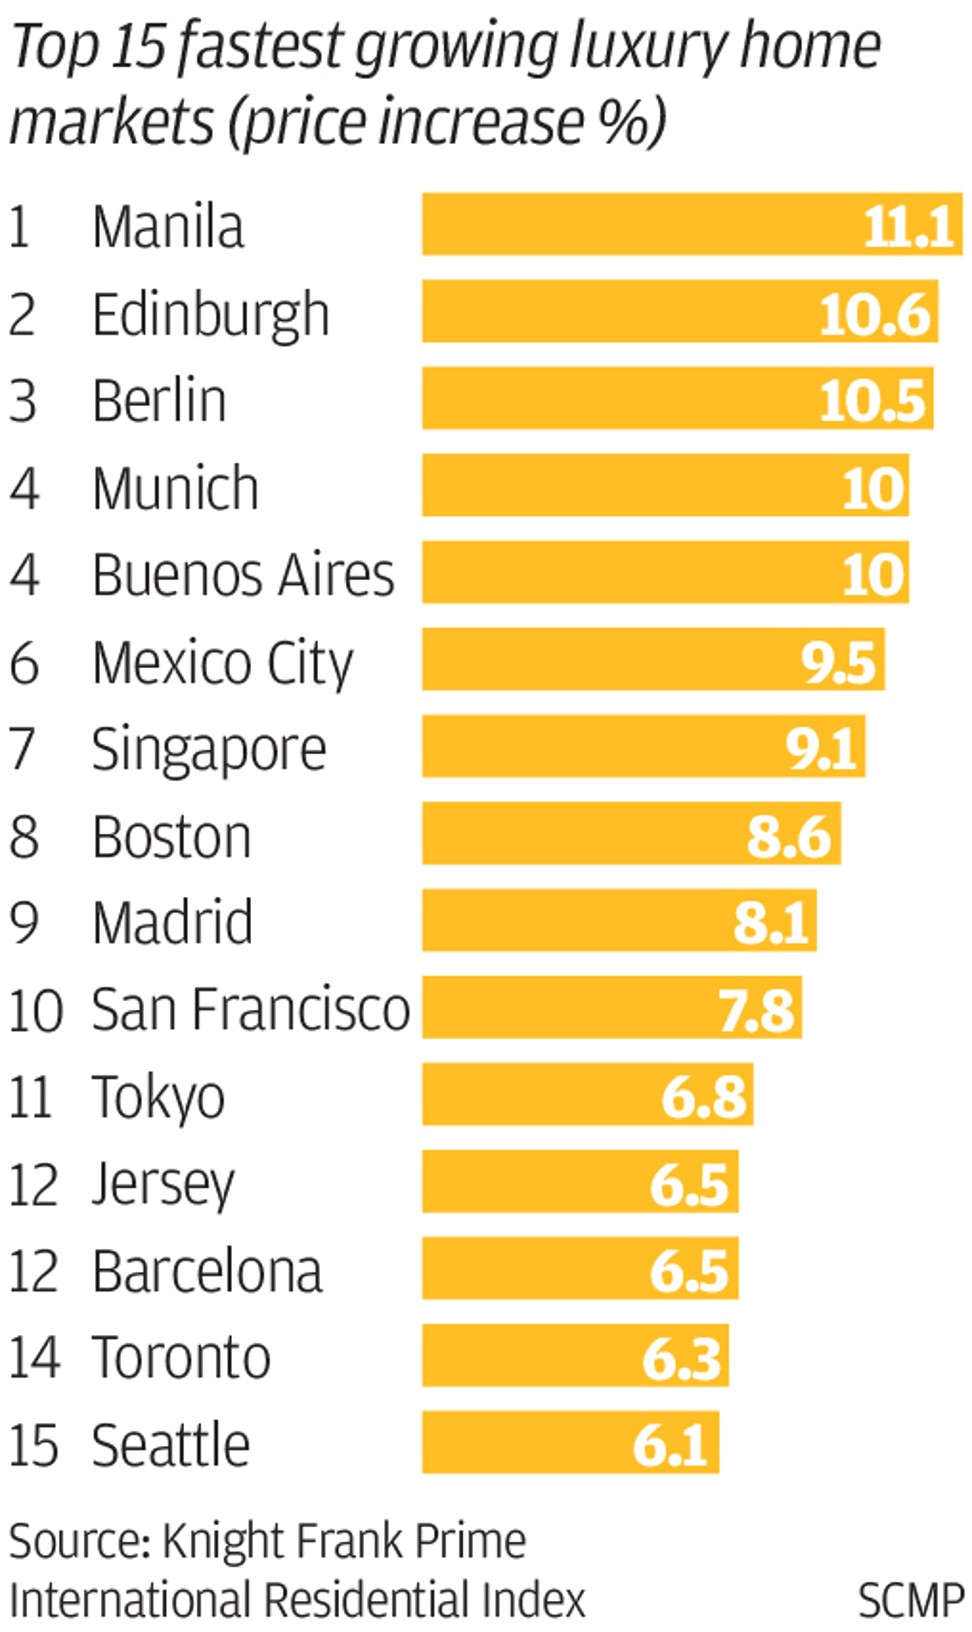 Manila beats Boston, Paris, Tokyo as world's hottest luxury home